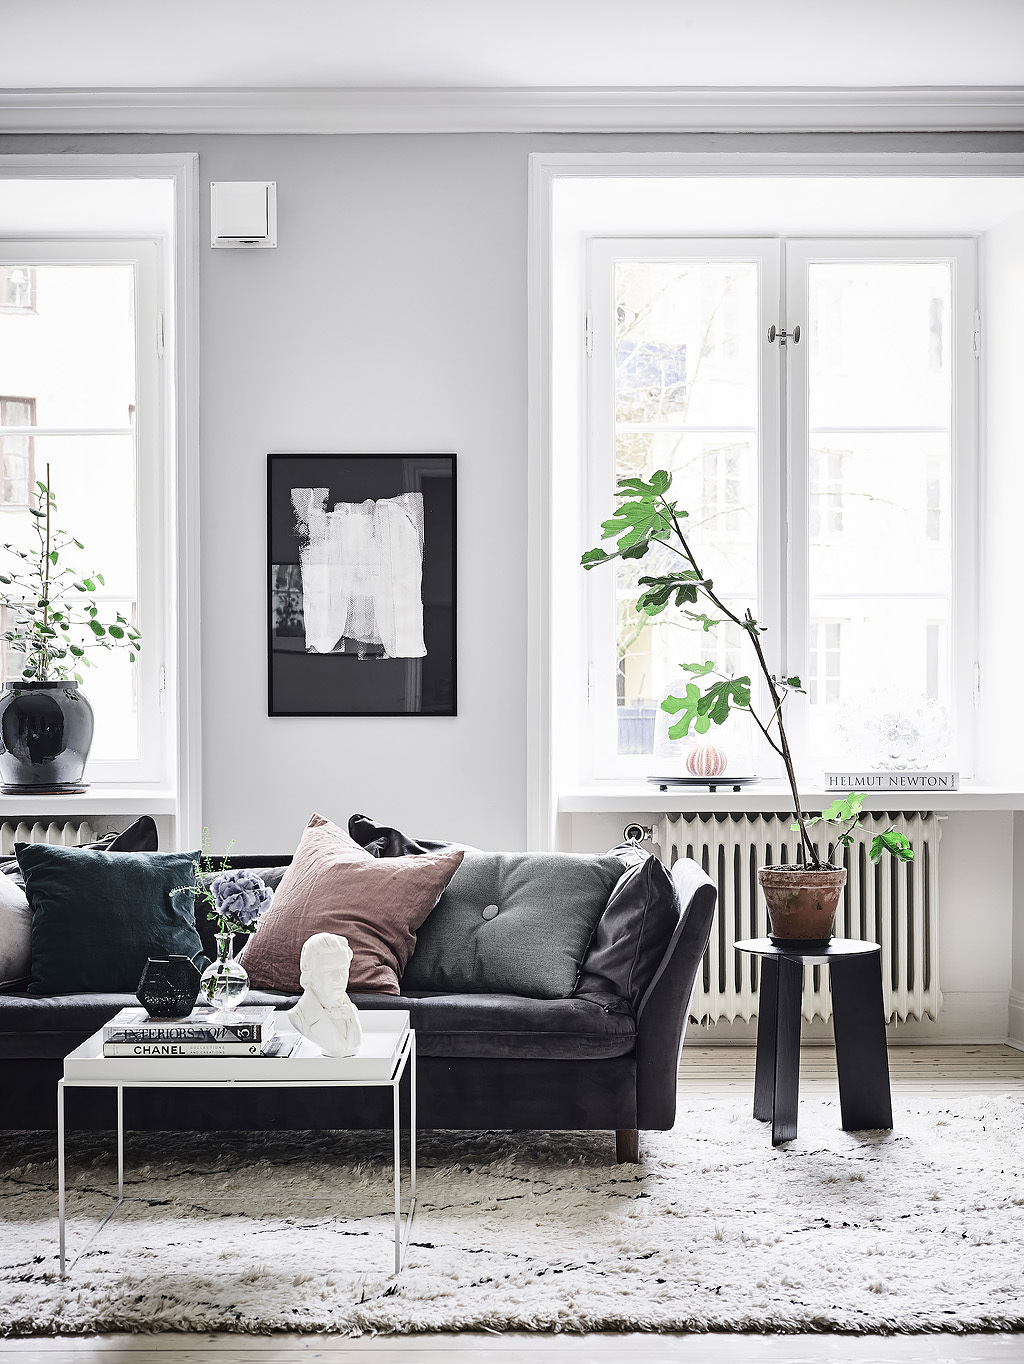 5 Amazing Black Leather Sofas For Your Luxury Living Room luxury living room 5 Amazing Black Leather Sofas For Your Luxury Living Room 5 Amazing Black Leather Sofas For Your Luxury Living Room 2